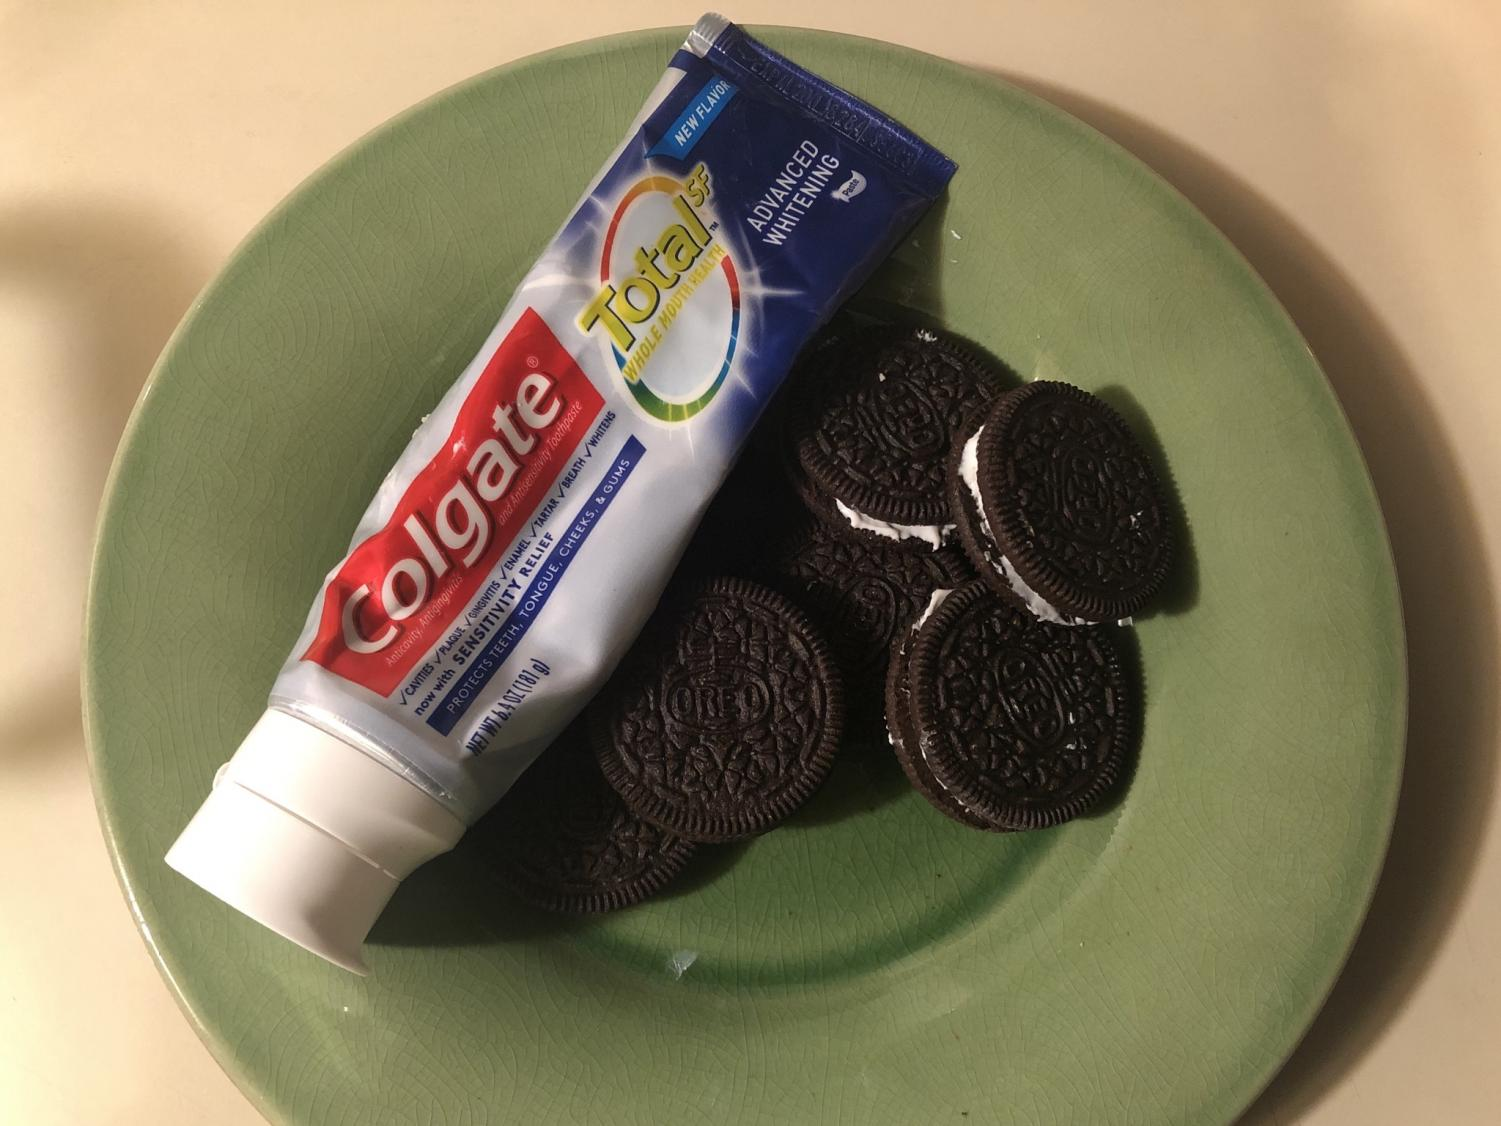 One of the oldest tricks to play on the unexpected: toothpaste filled Oreos.